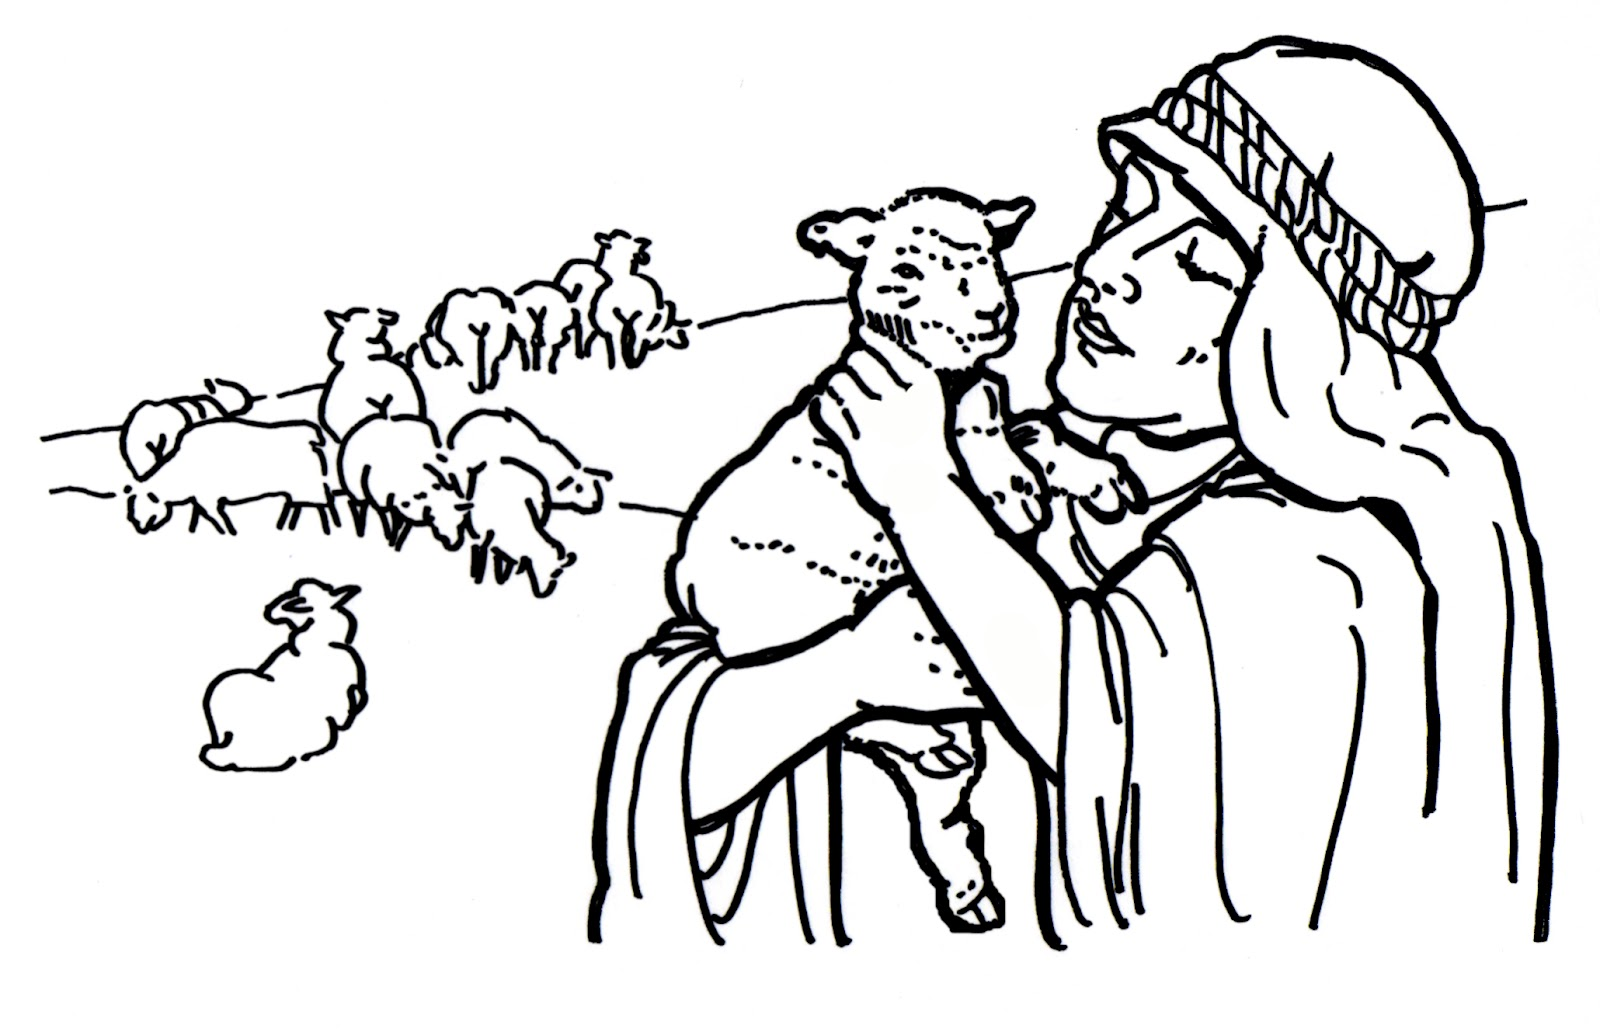 lost sheep parable coloring pages - photo#4